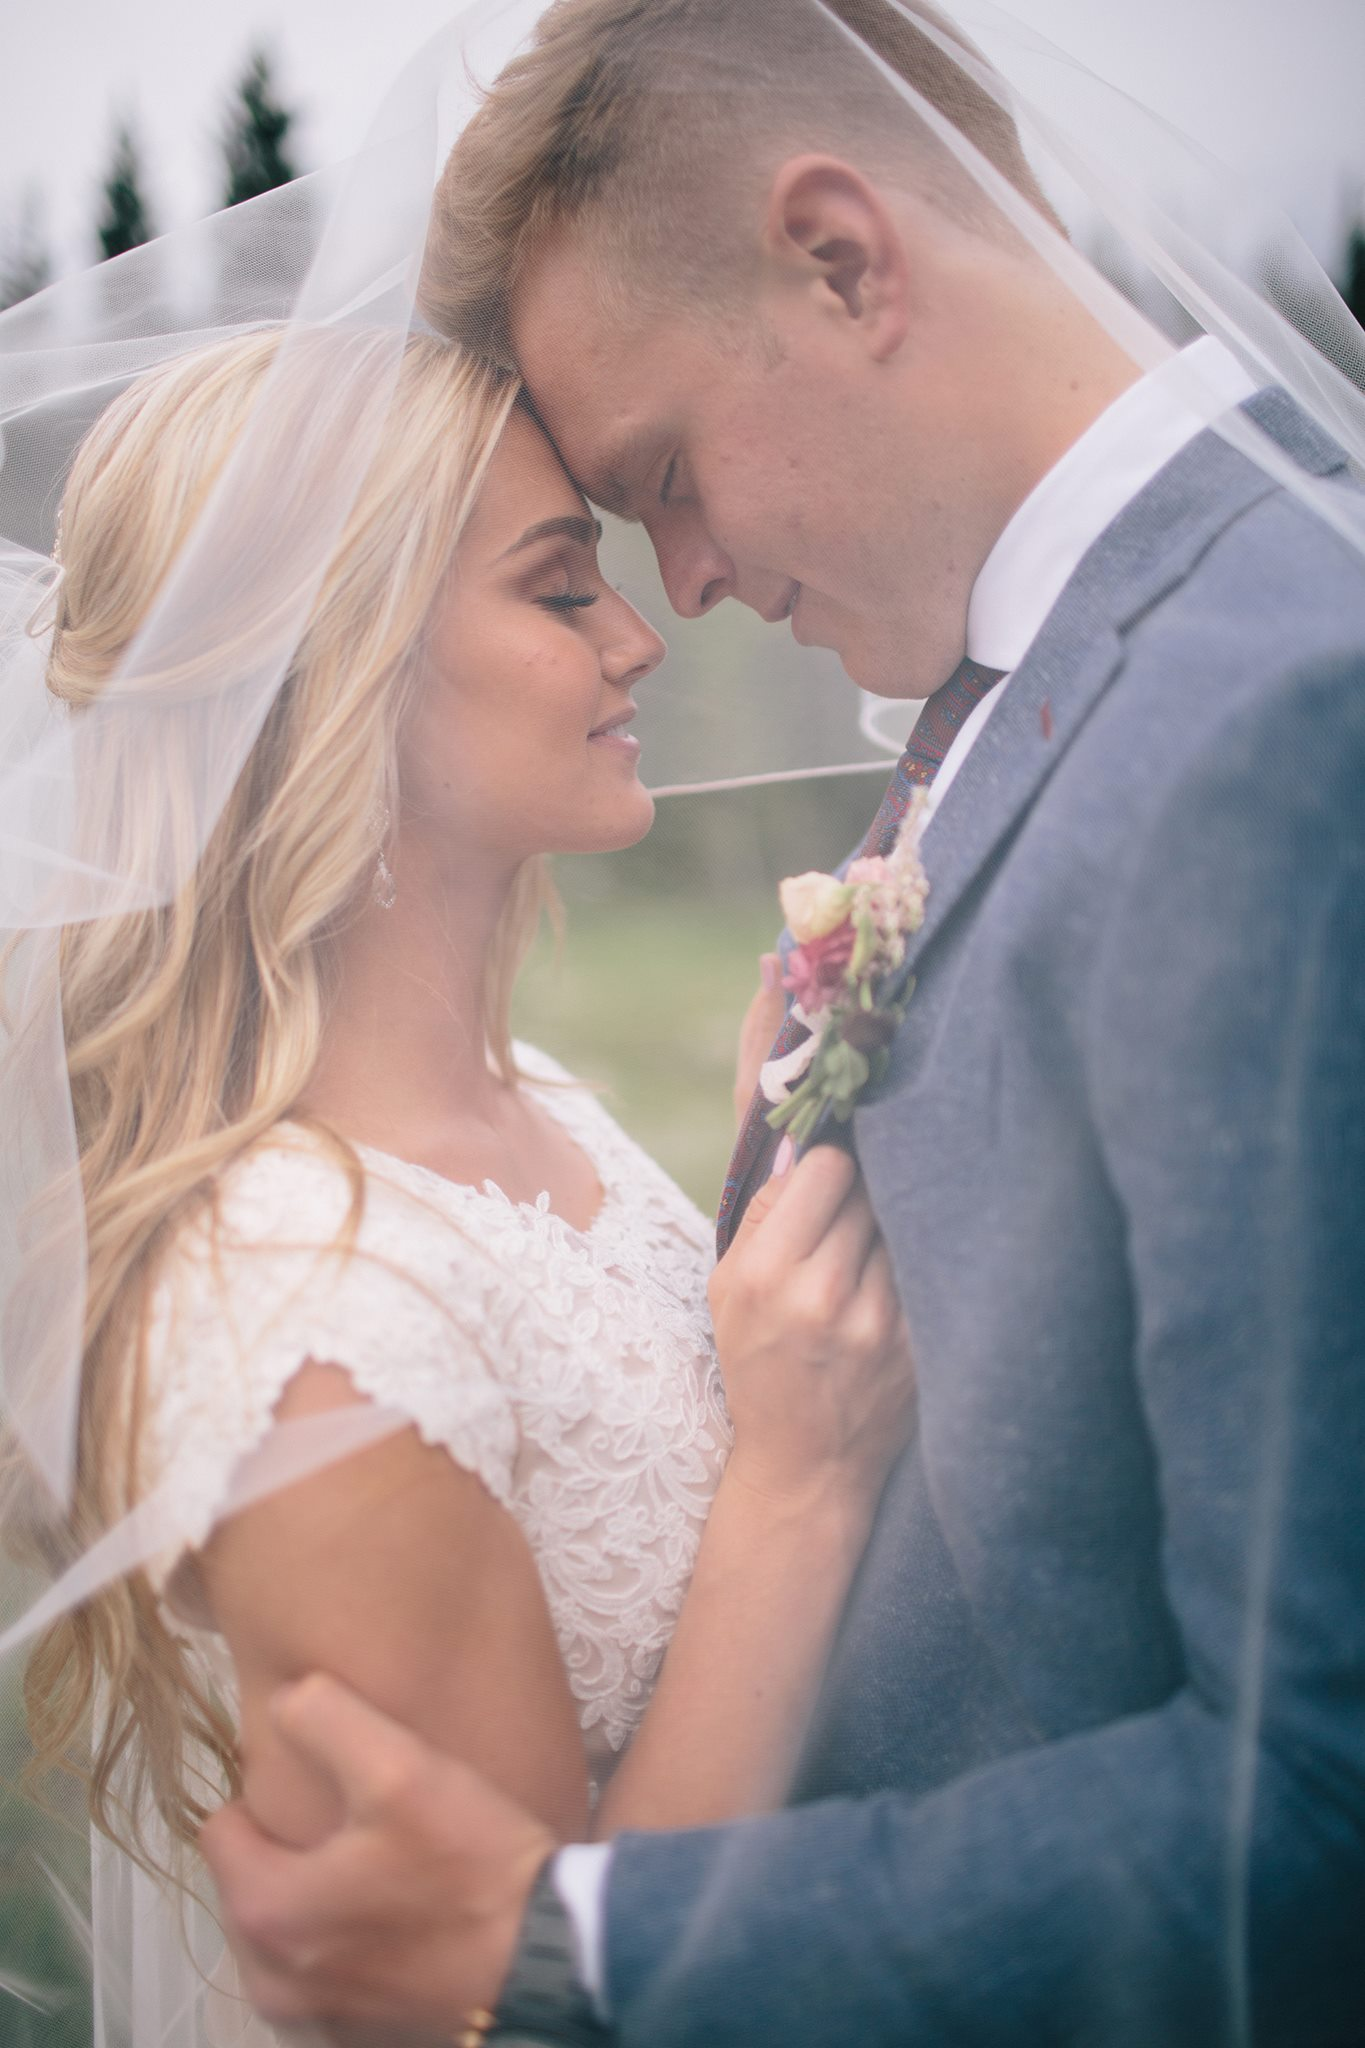 Our stunning bride and groom sharing a romantic moment on their wedding day.